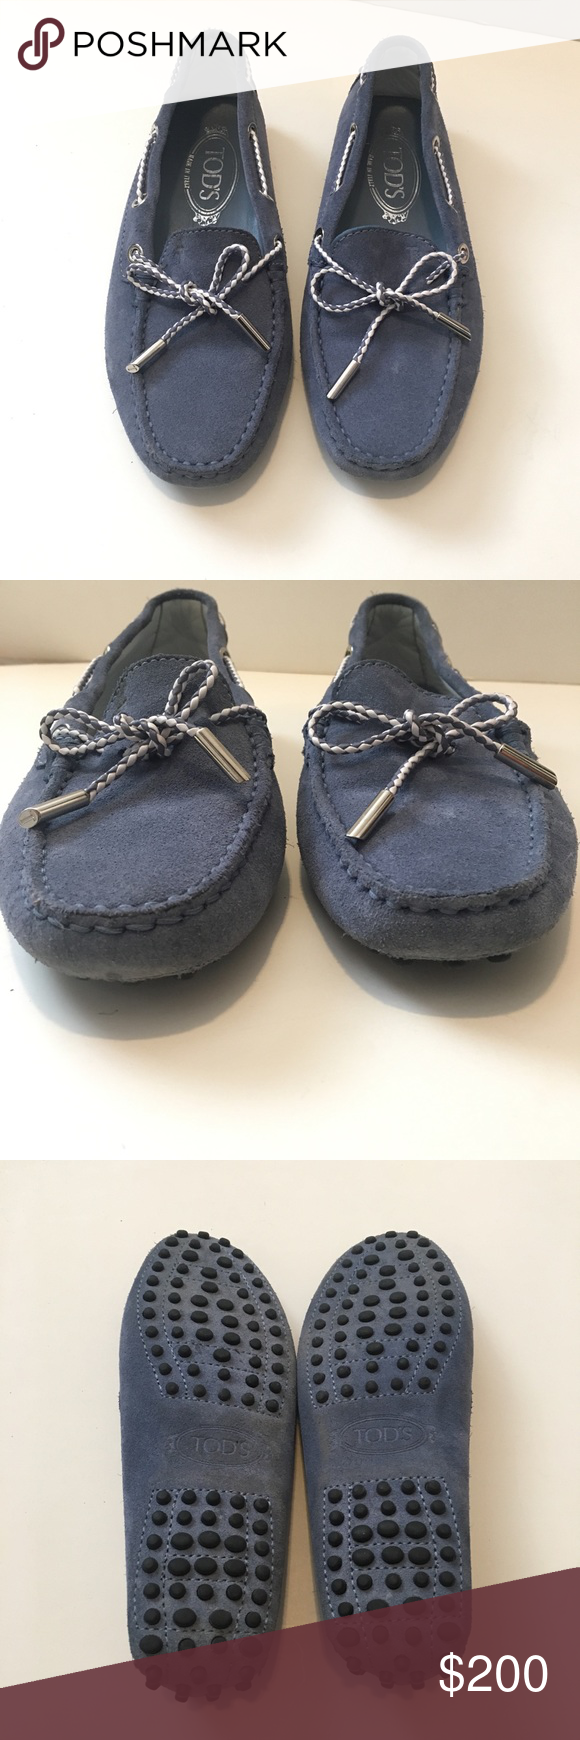 bb553f25e33 Tod s Women s Braided Lace Gommini Brand  Tod s Style  Suede Gommini Driving  Shoe Braided Leather Two-Tone Tie Color  Blue Suede with Blue and White  Braided ...